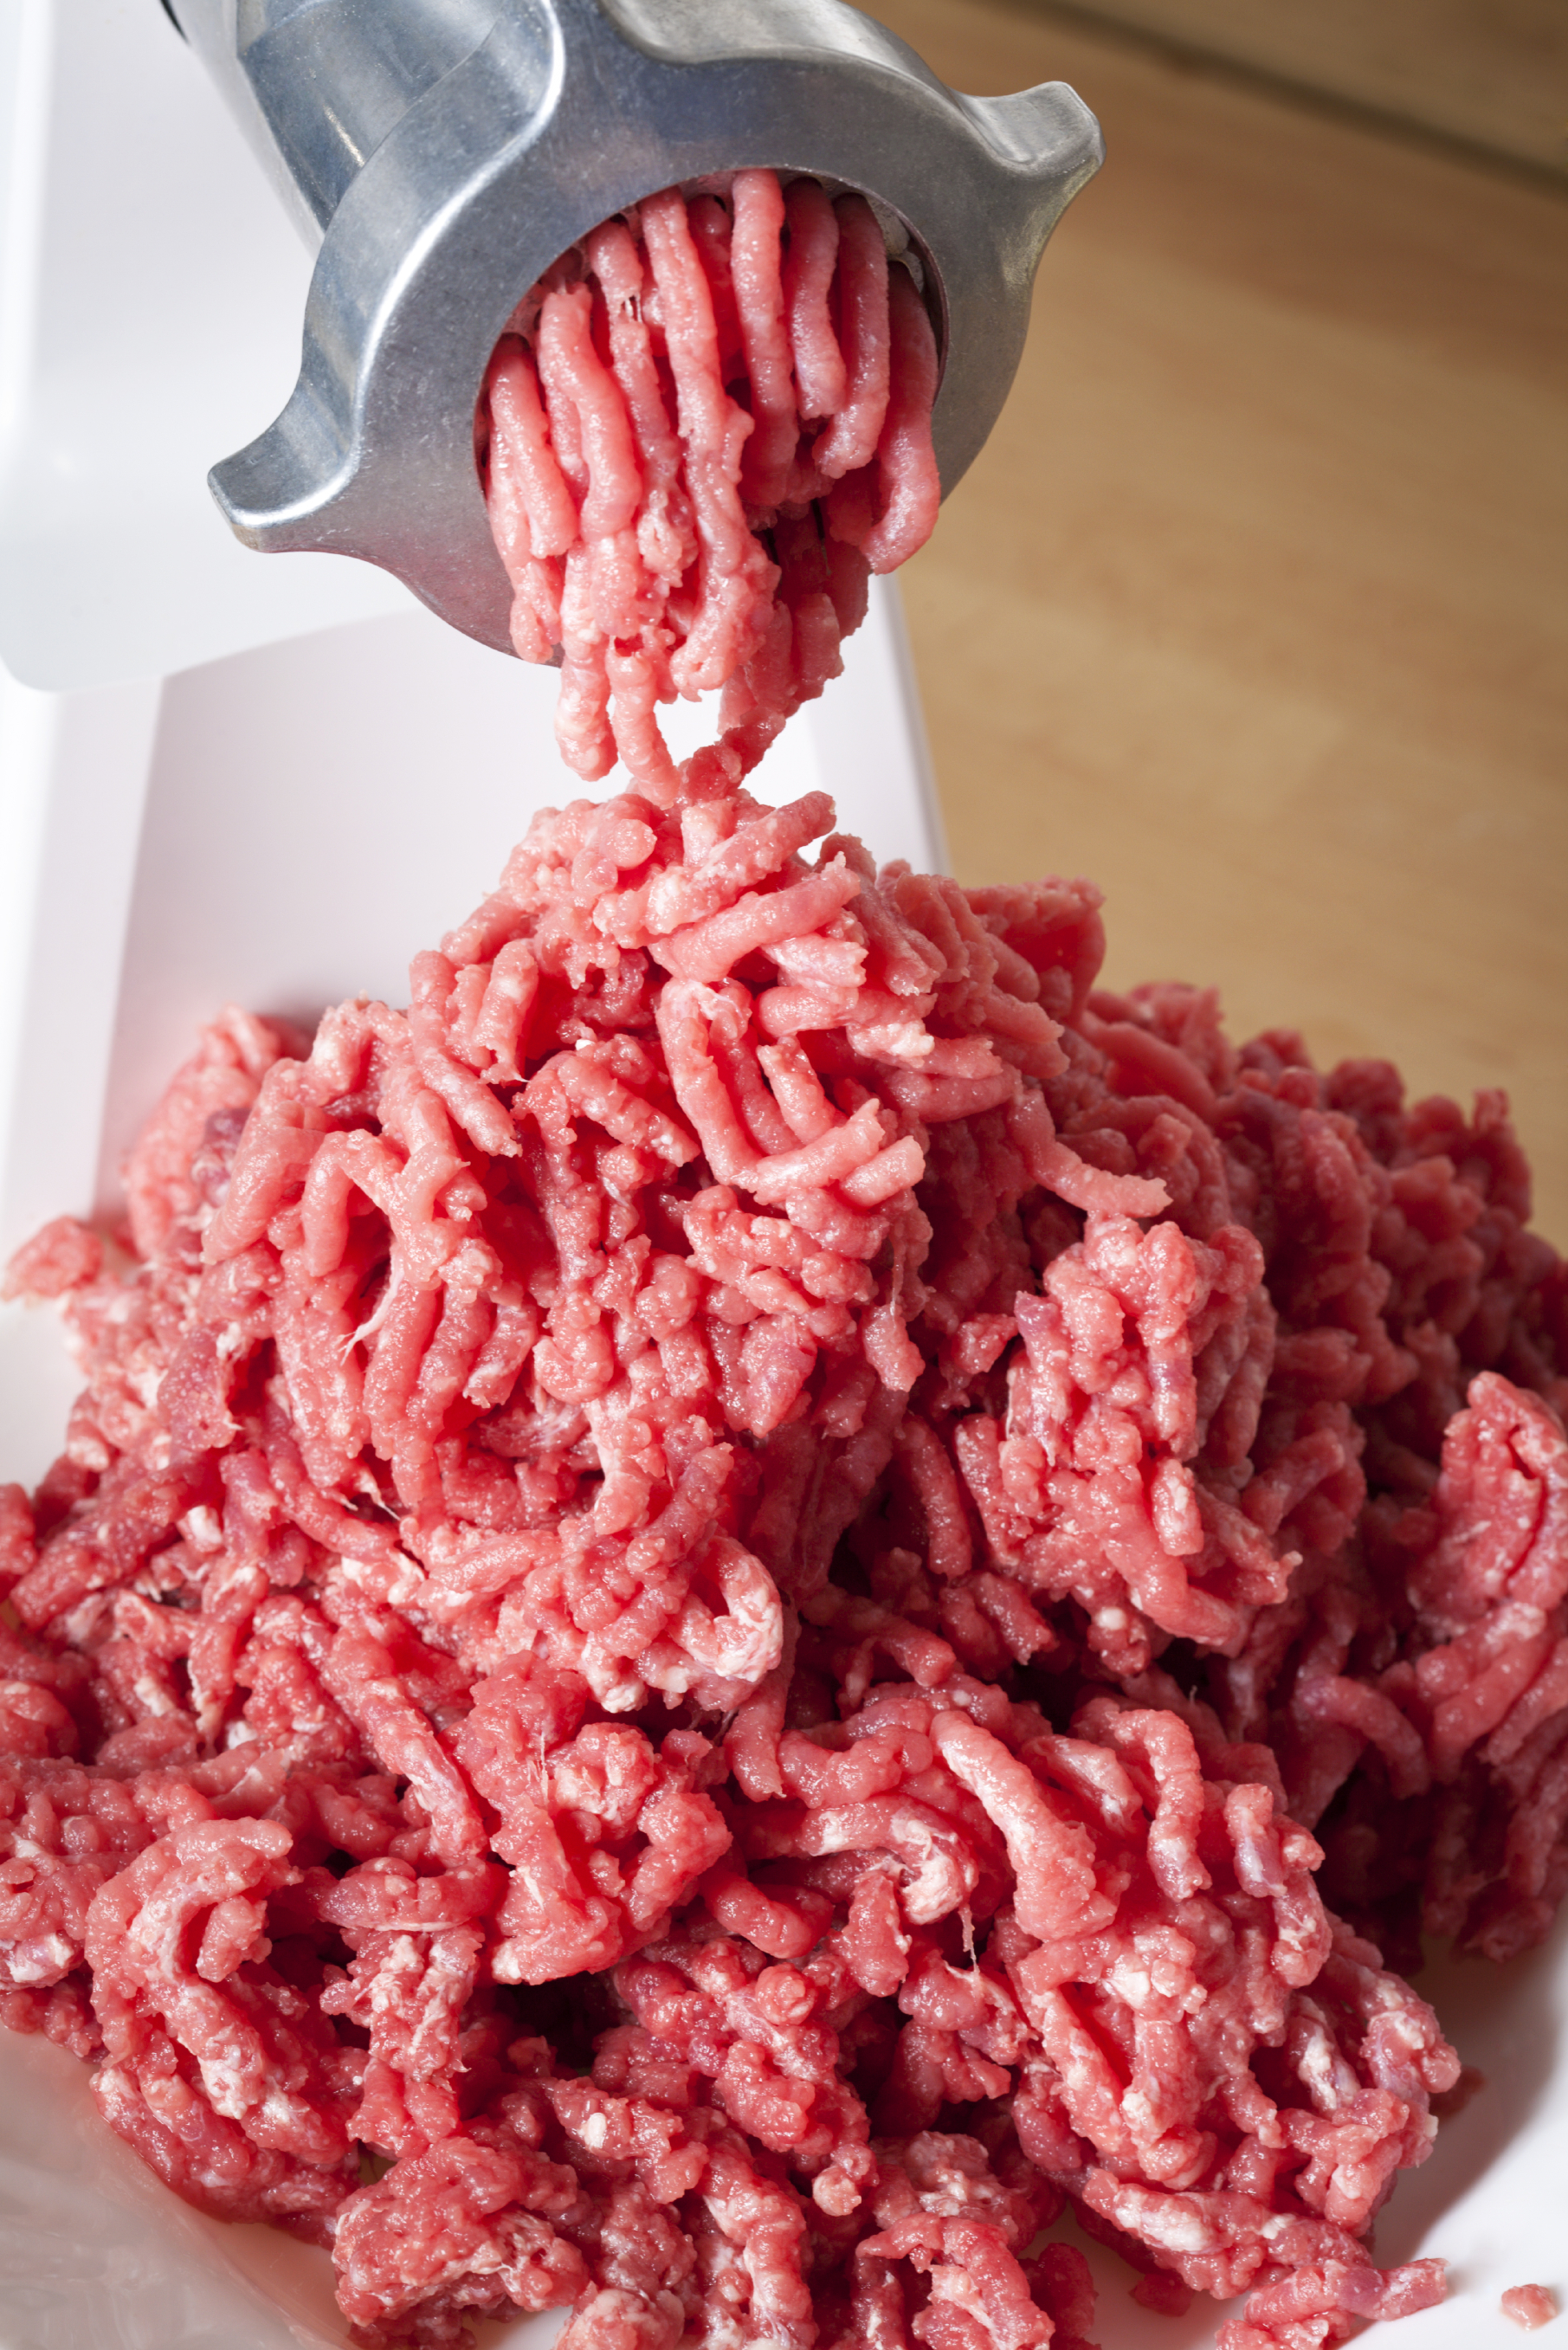 Ground Beef 19220602_Large.jpg